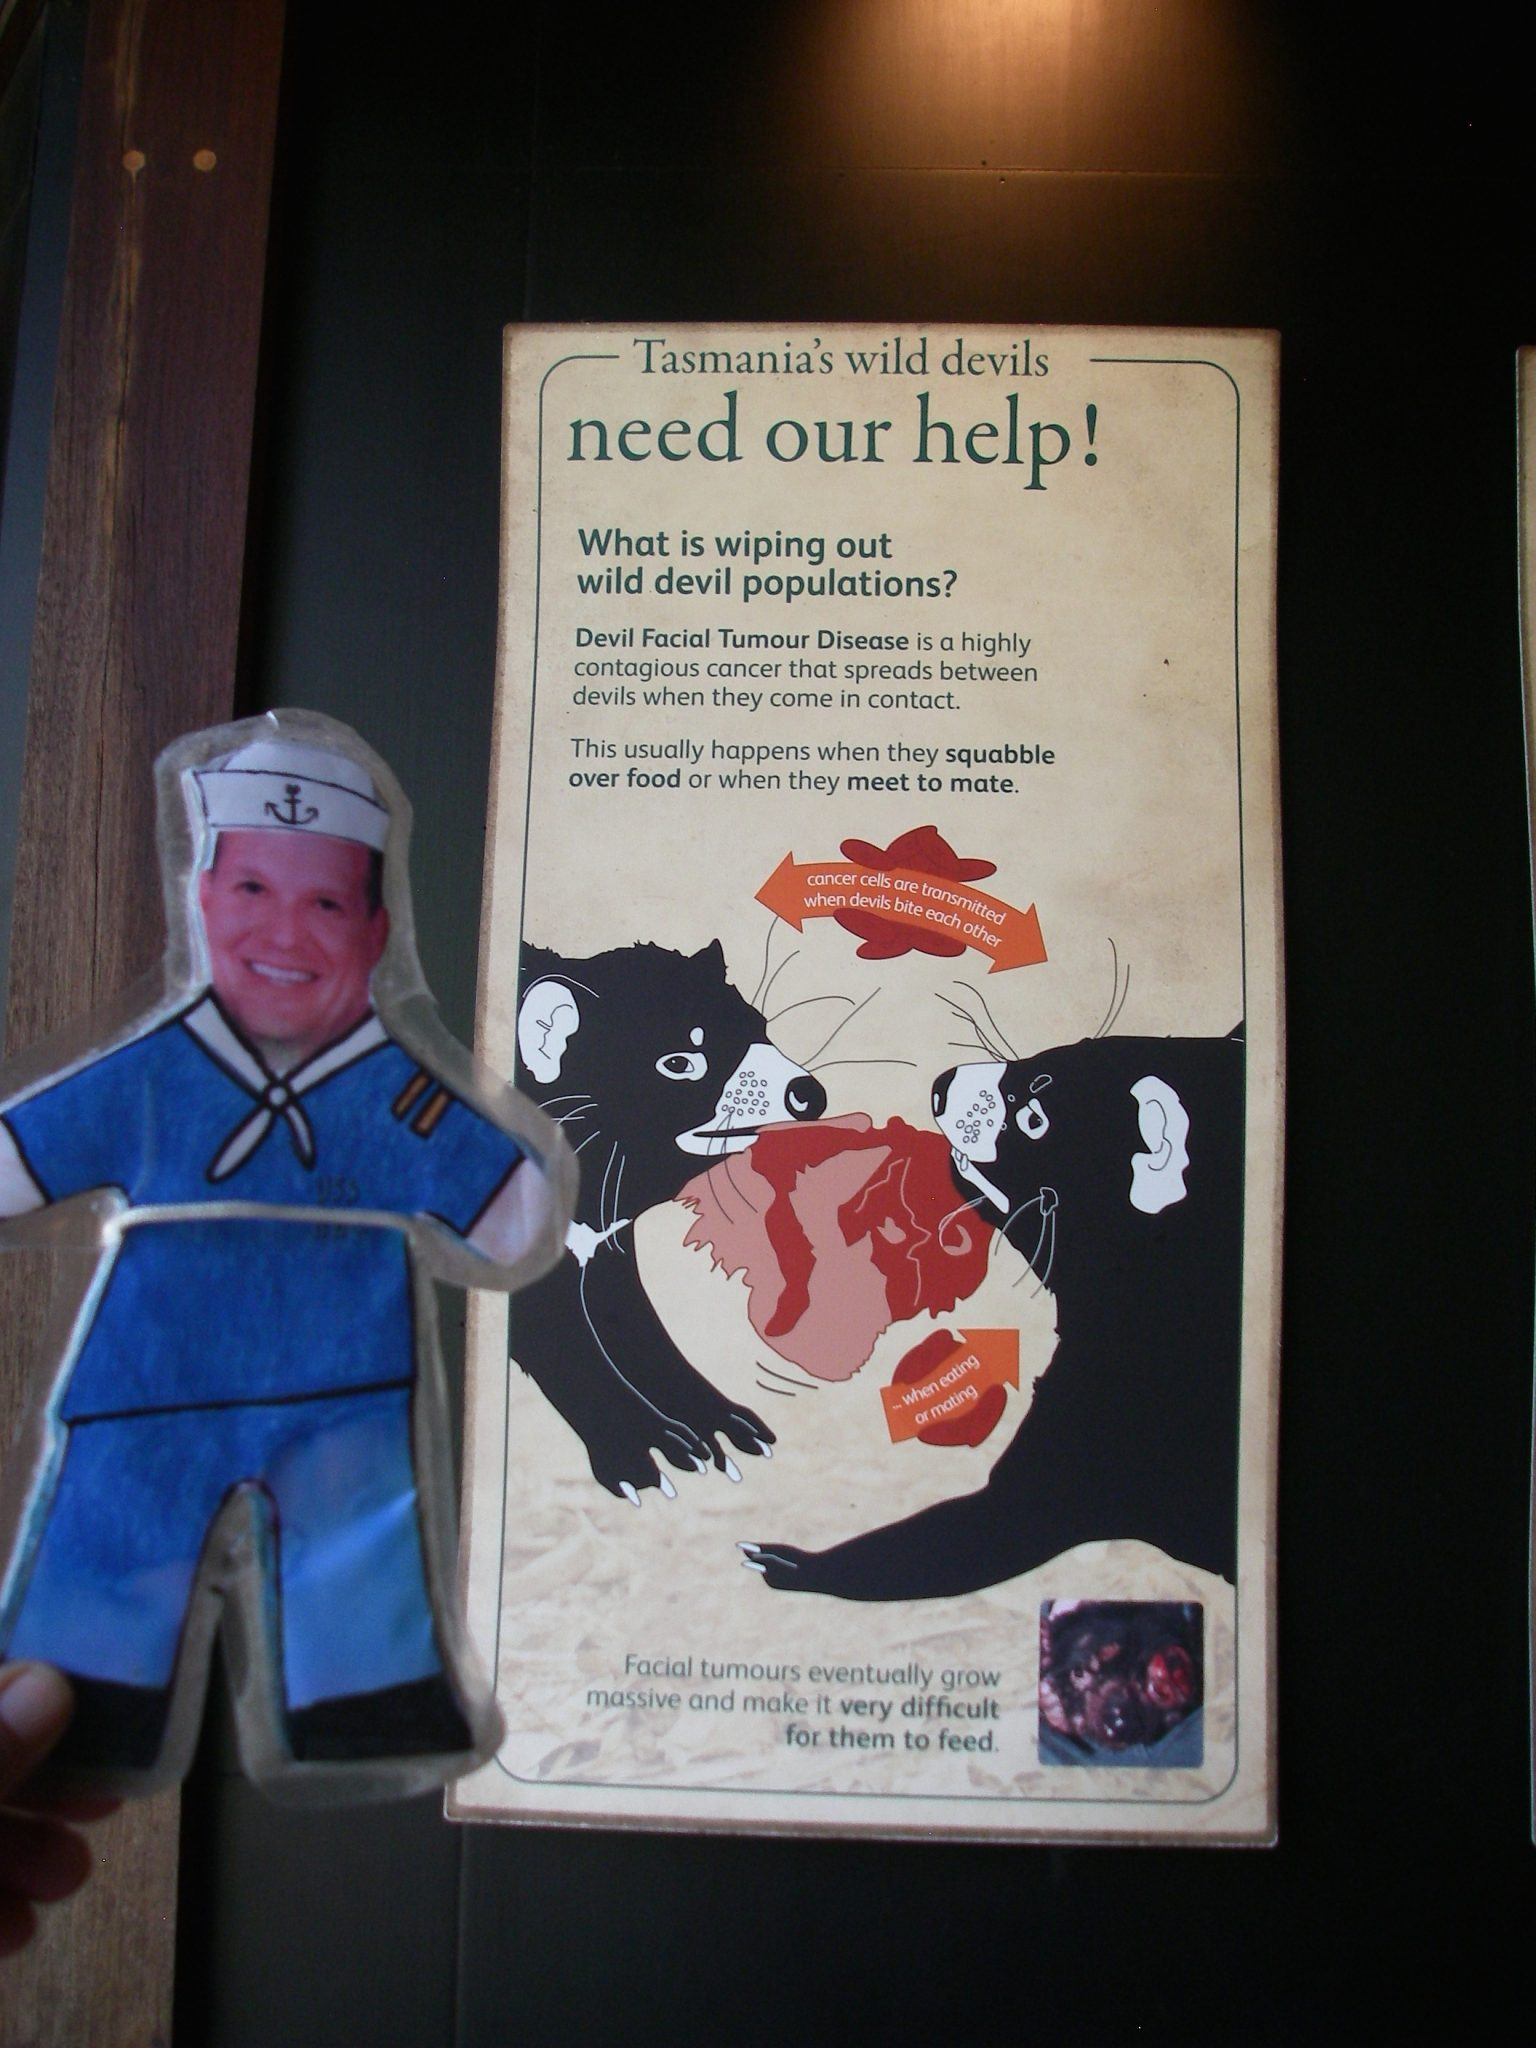 61.4. Flat Mr. Davis was sorry to read about the troubles Tasmanian Devils have